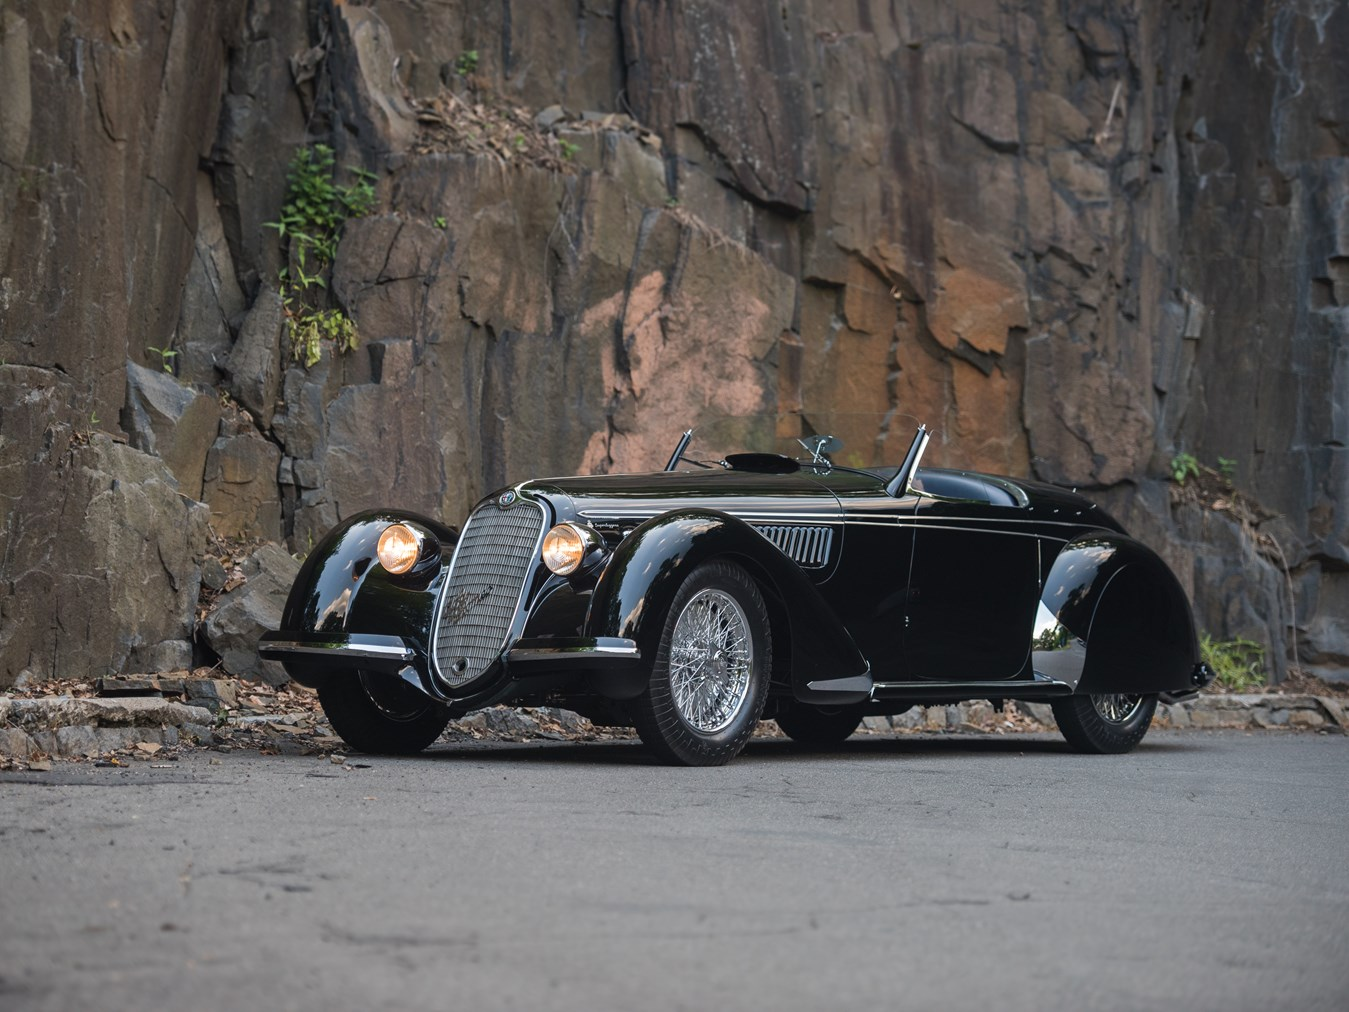 rm sotheby 39 s 1939 alfa romeo 8c 2900b lungo spider by touring monterey 2016. Black Bedroom Furniture Sets. Home Design Ideas